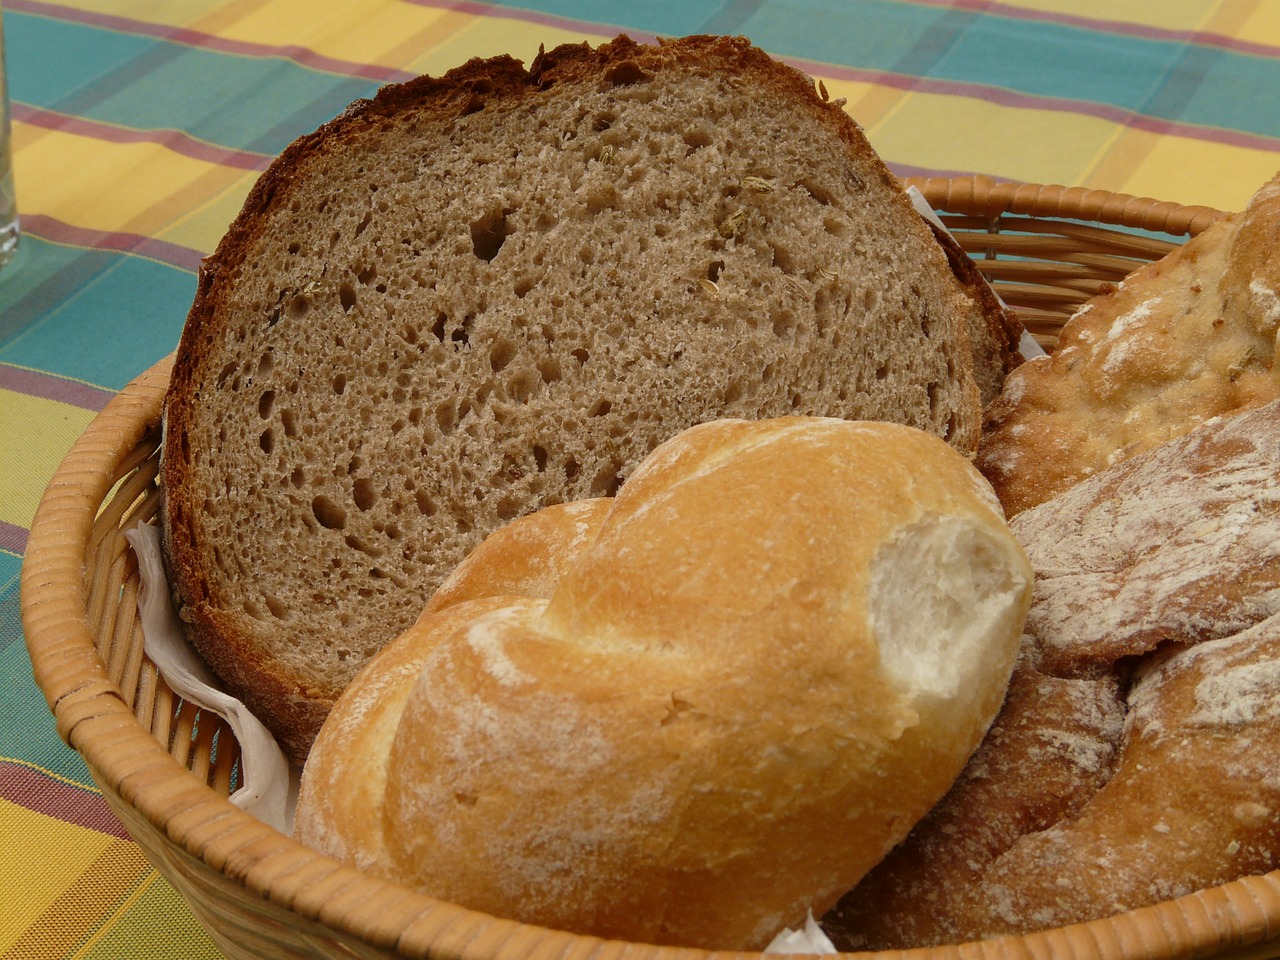 bread breadbasket breakfast free photo